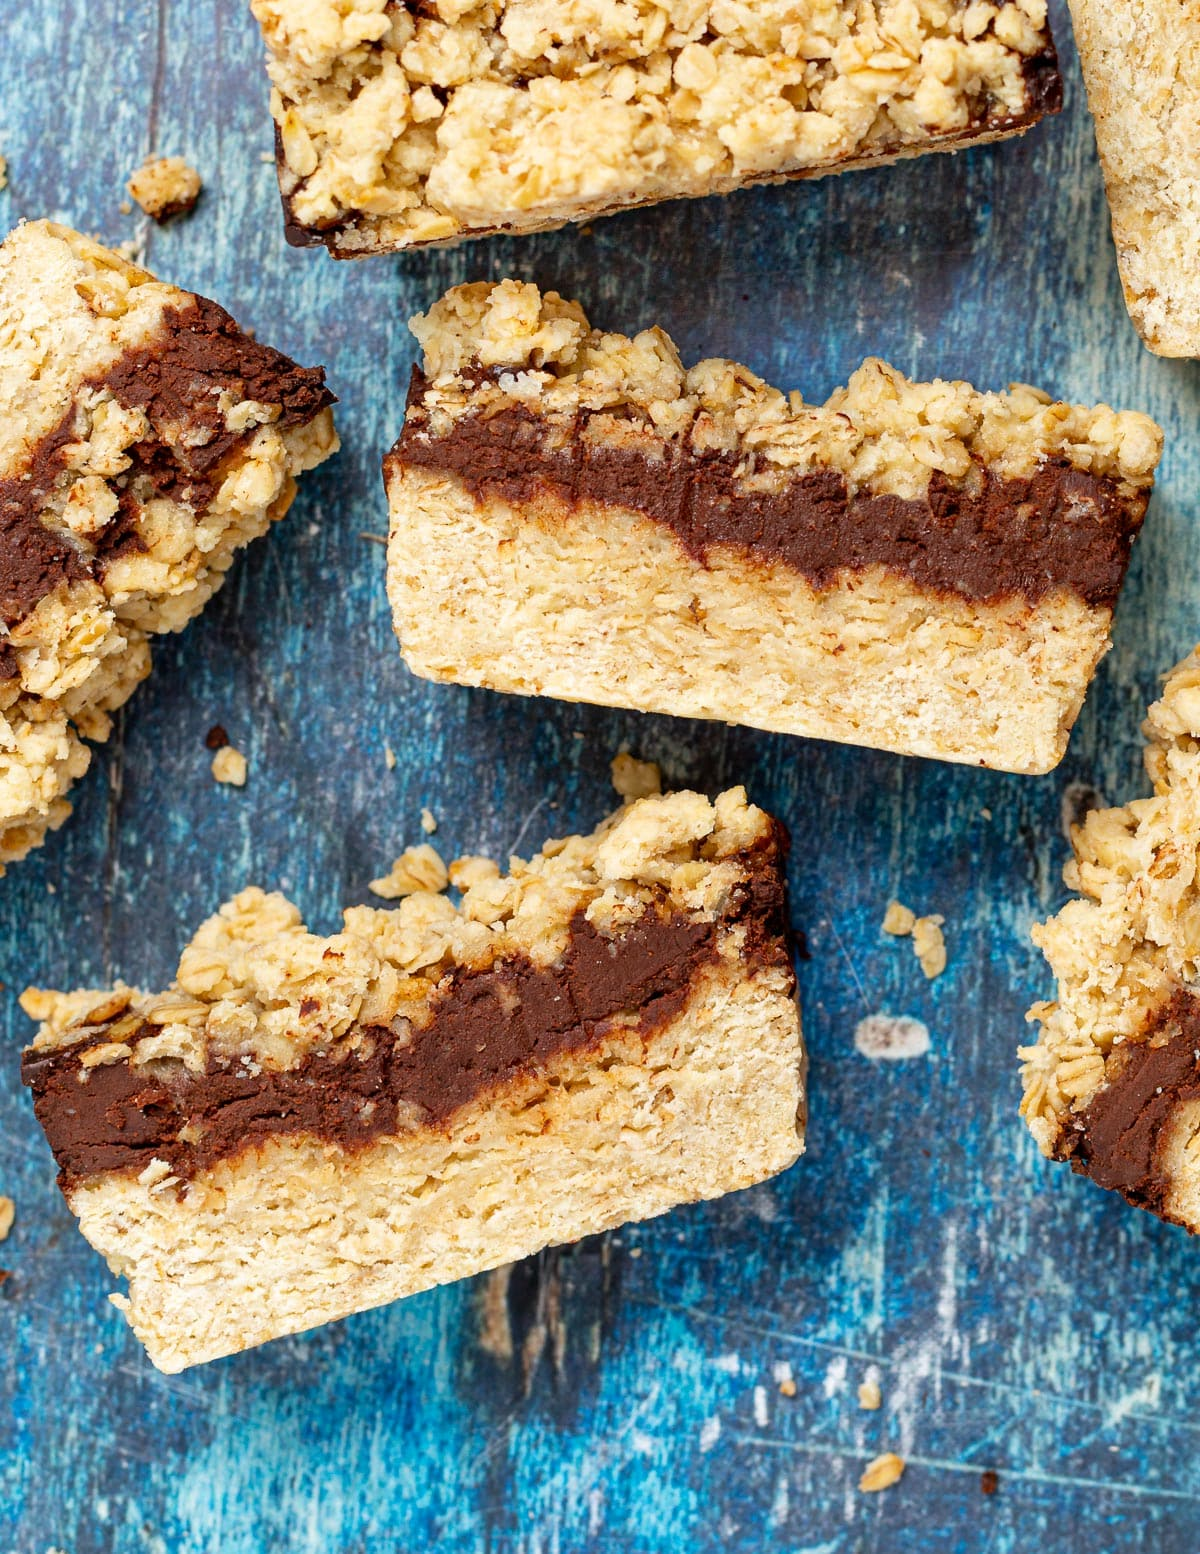 chocolate oat bars laid down on a blue background